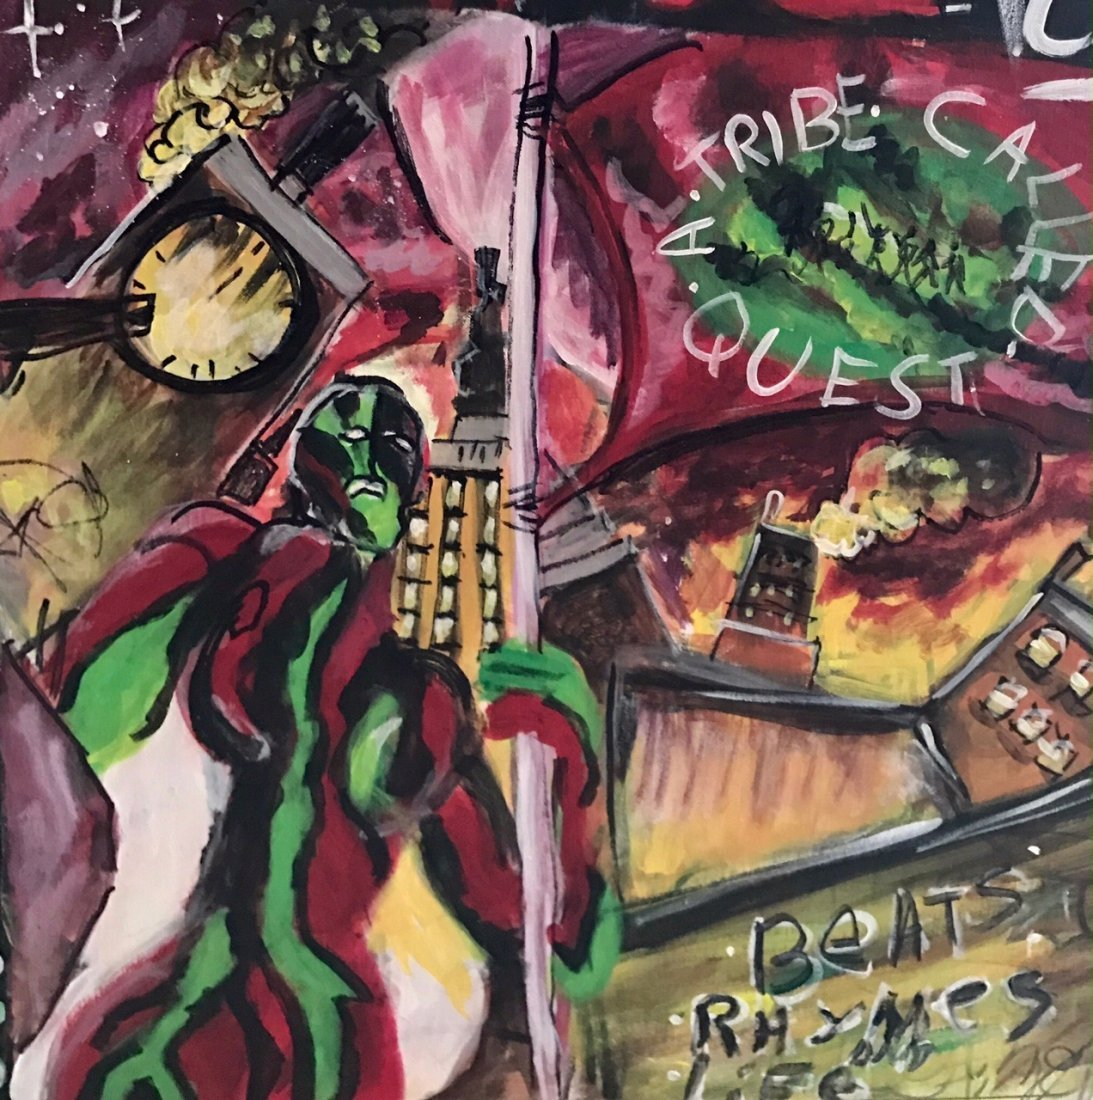 A Tribe Called Quest Original Hip-Hop Album Cover Art - 4